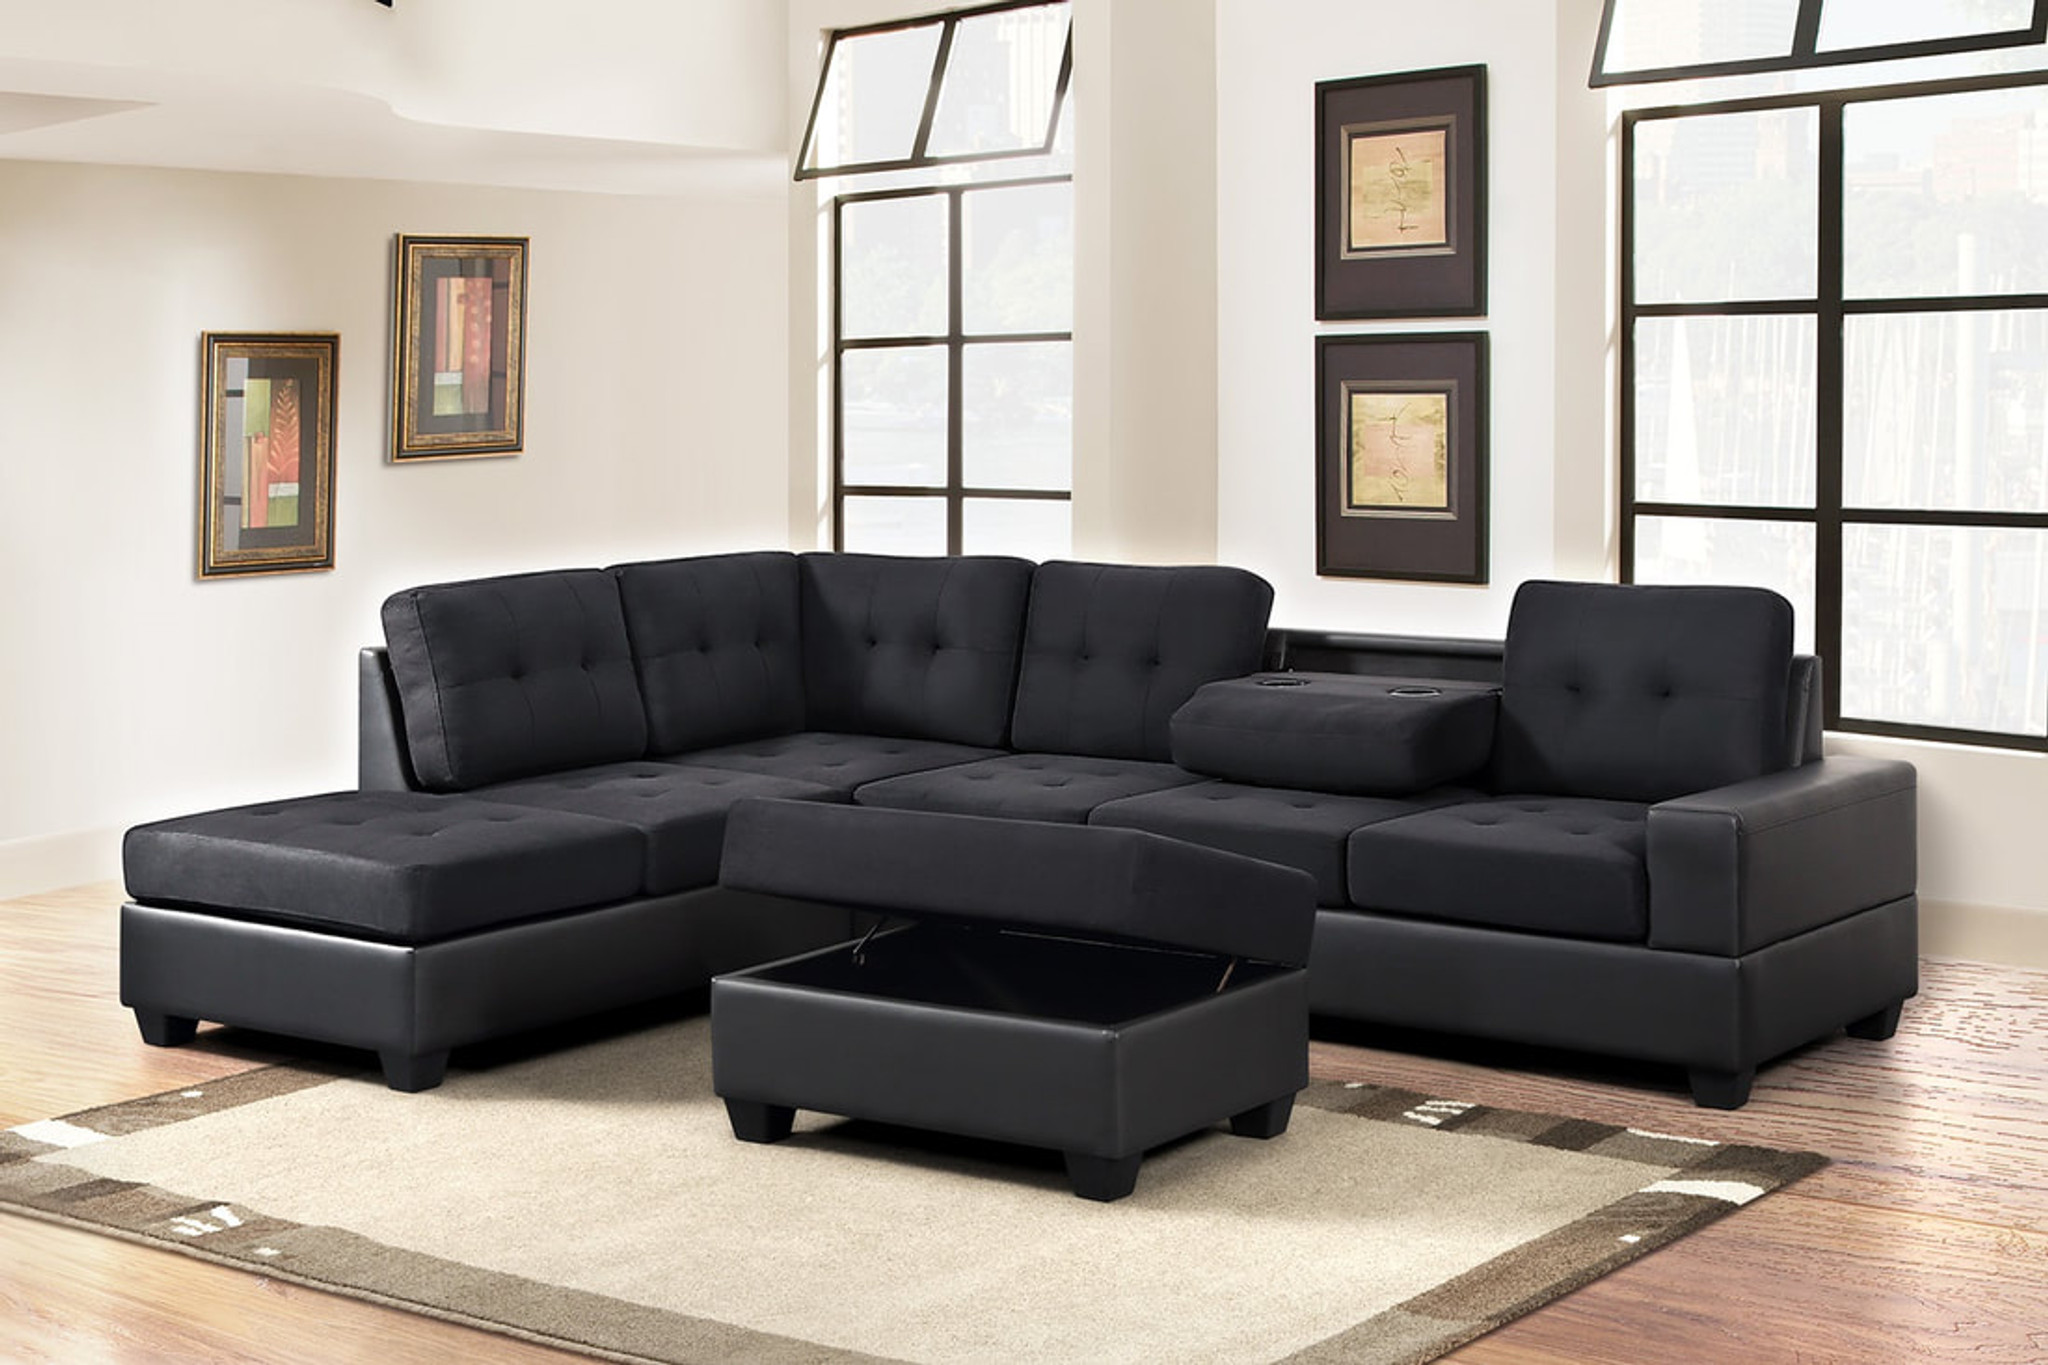 3 PCS HEIGHTS THICK FABRIC & BONDED LEATHER SECTIONAL WITH DROP DOWN CUP  HOLDER WITH OTTOMAN IN BLACK